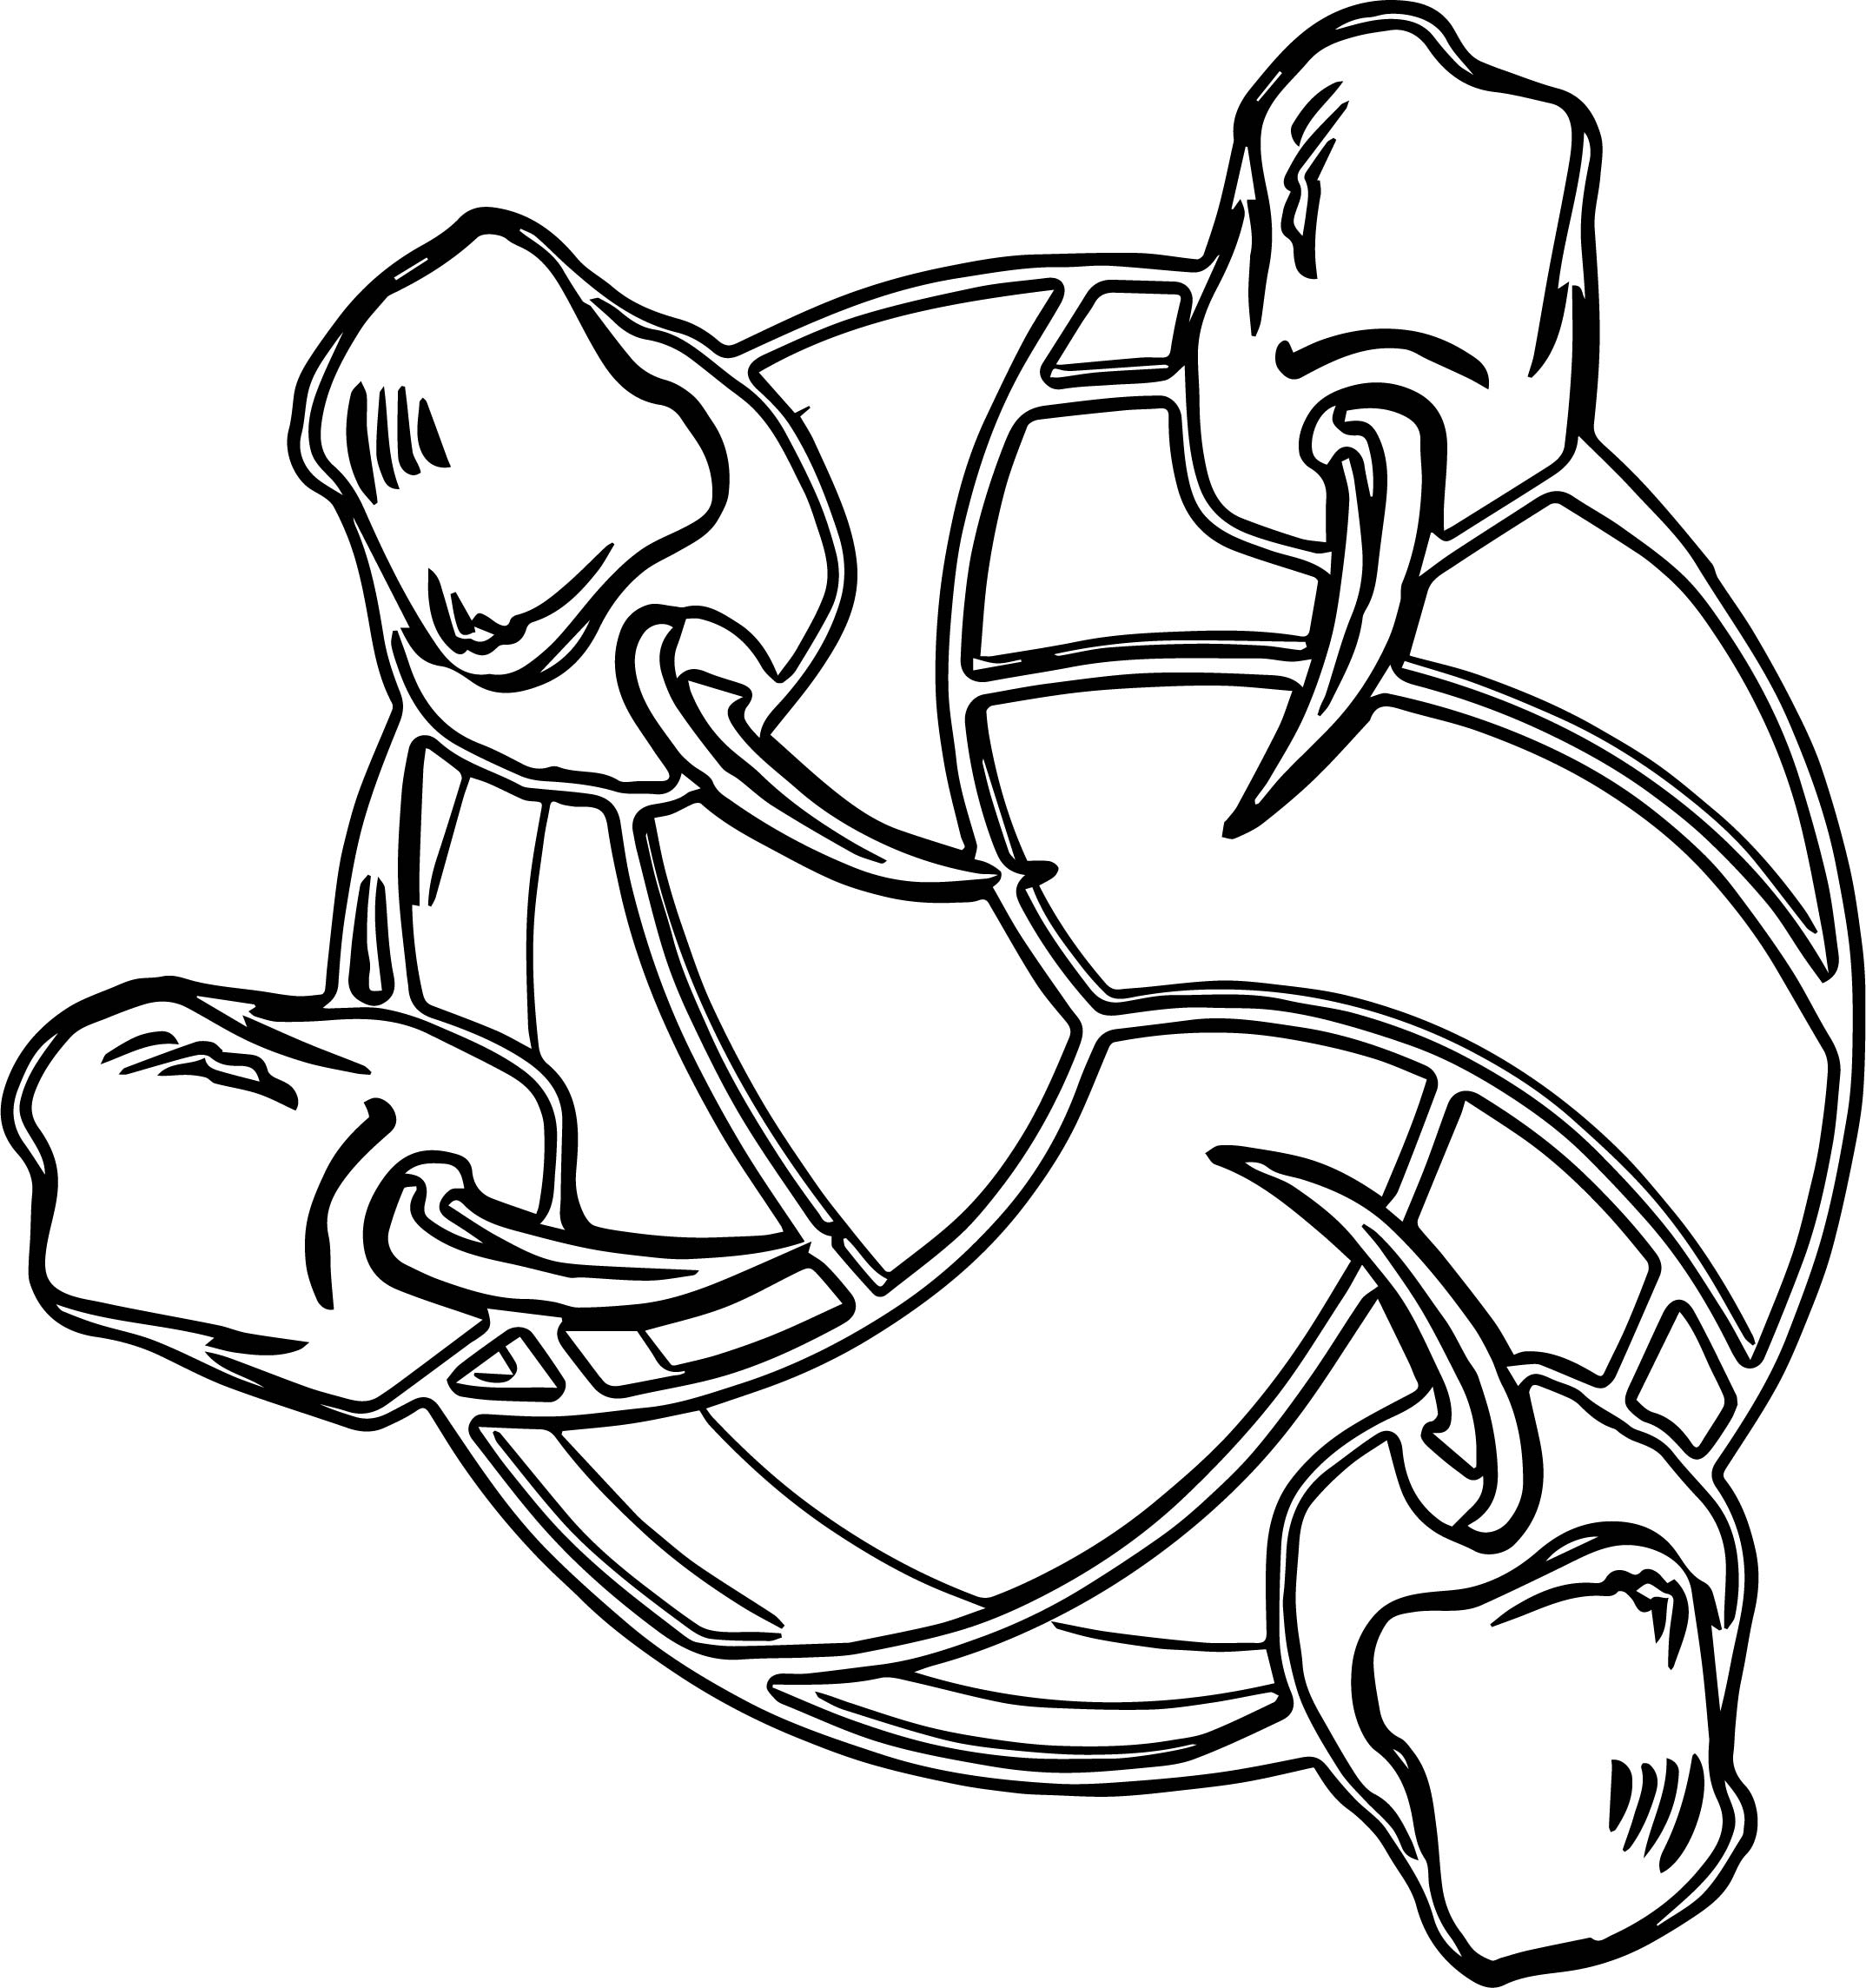 Tiger Hand Volleyball Coloring Page